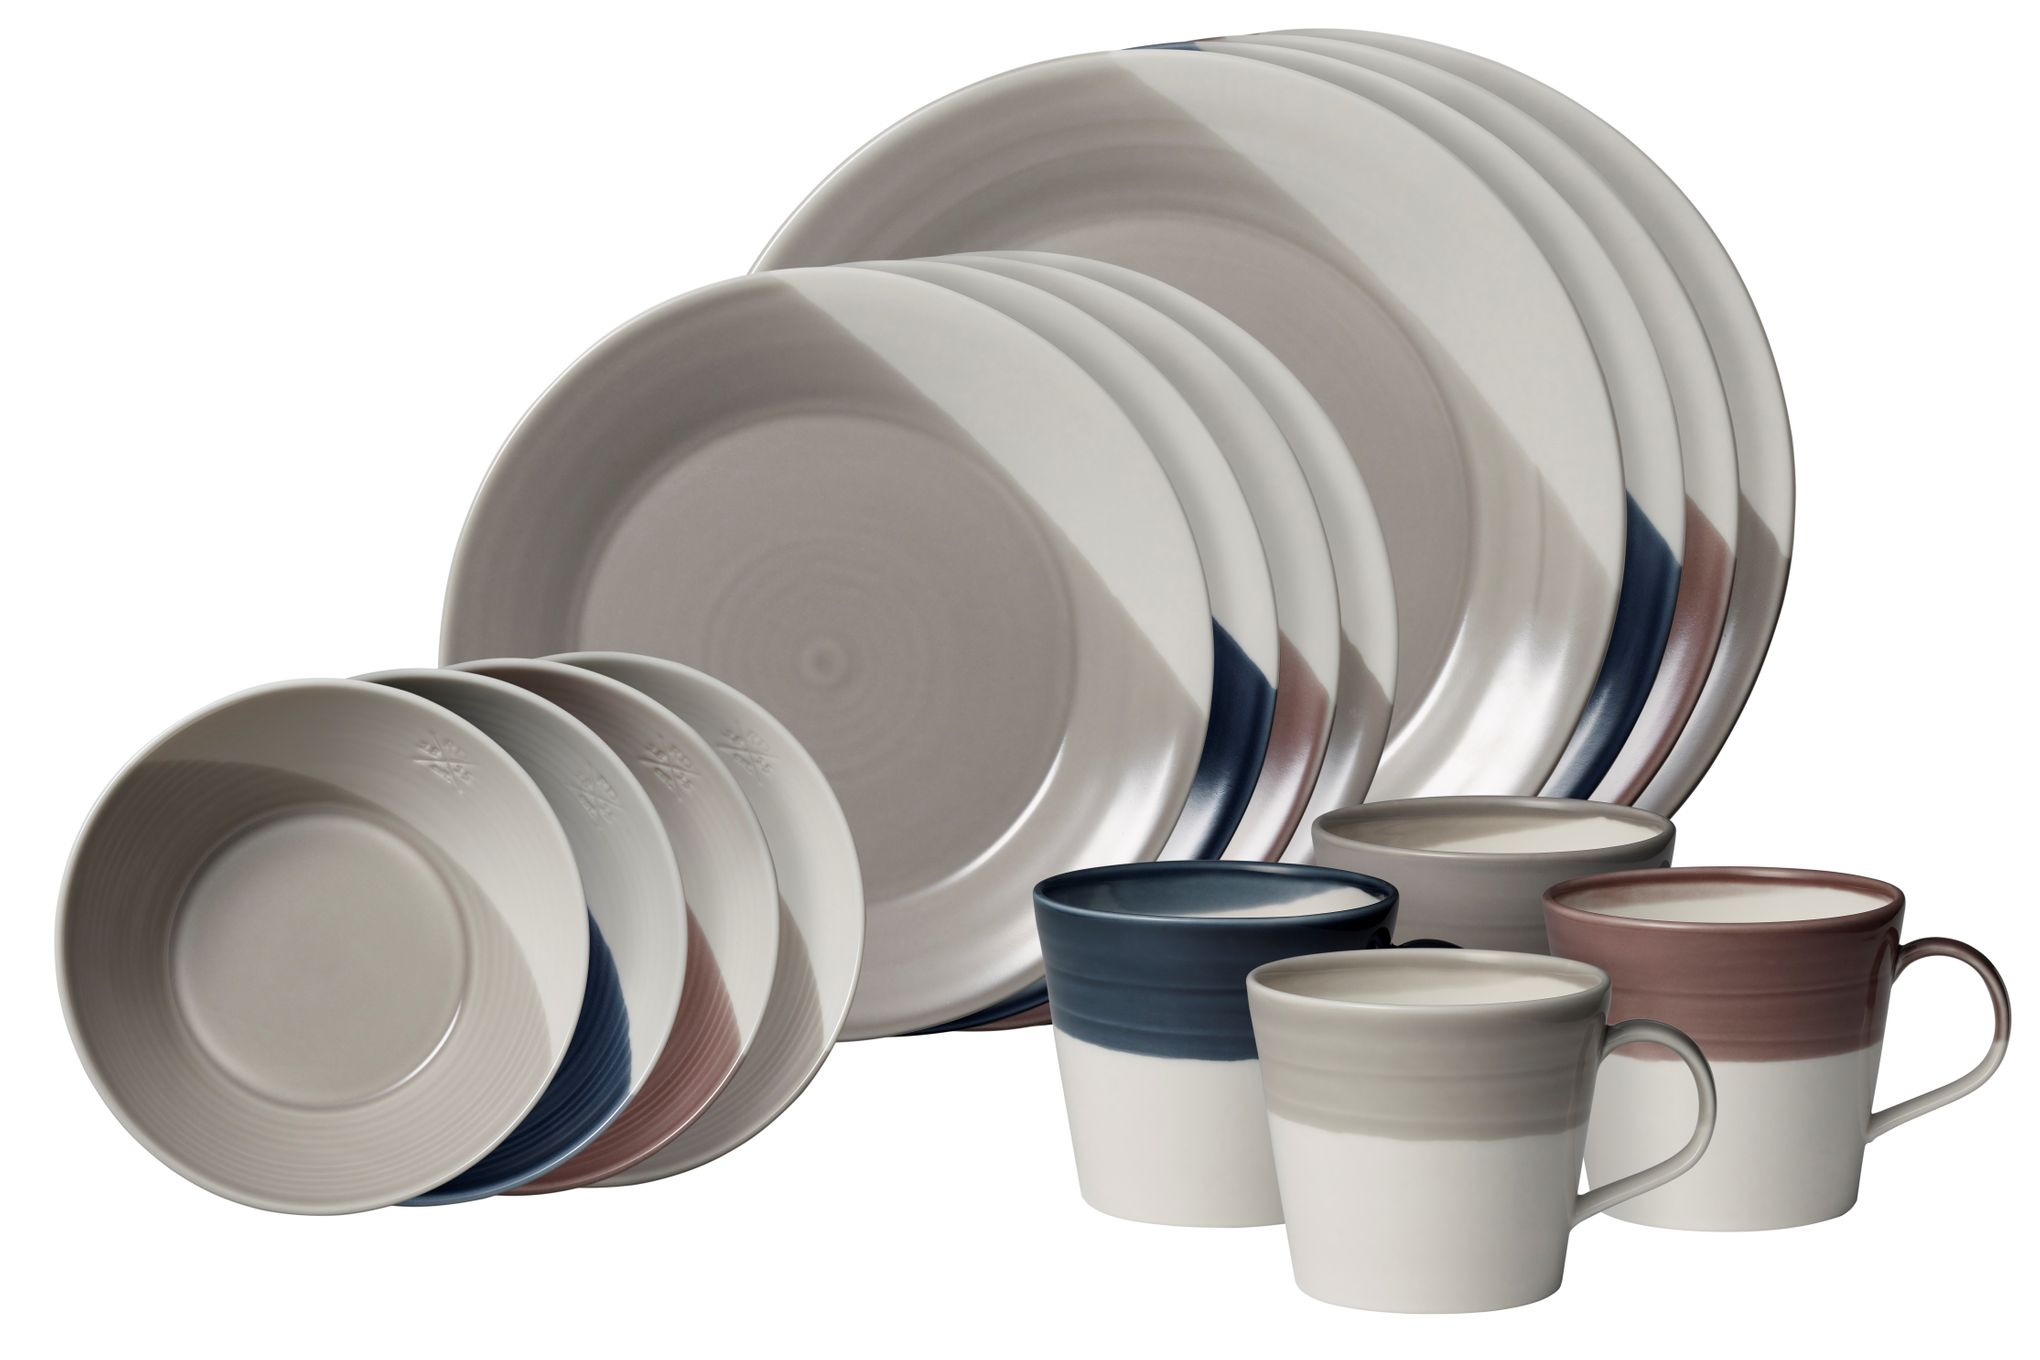 Royal Doulton Bowls of Plenty 16 Piece Set Mixed Colours - 4 x Dinner Plate, Side Plate, Cereal Bowl, Mug thumb 1